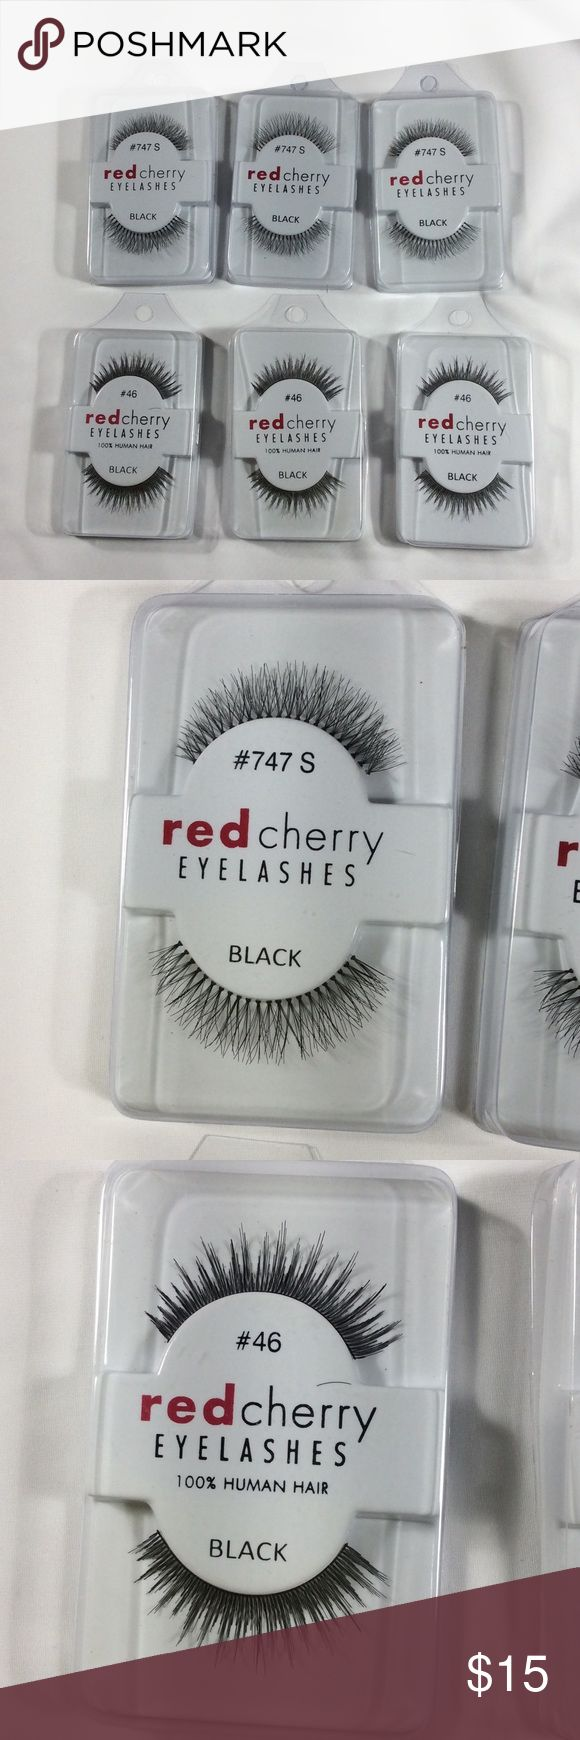 NEW 6 Pair Eyelashes Red Cherry false eyelashes, #46 and # 747.  100% human hair, according to the online description.  You receive 6pair for your order. Still stapled shut, never opened or used. Red Cherry Makeup False Eyelashes